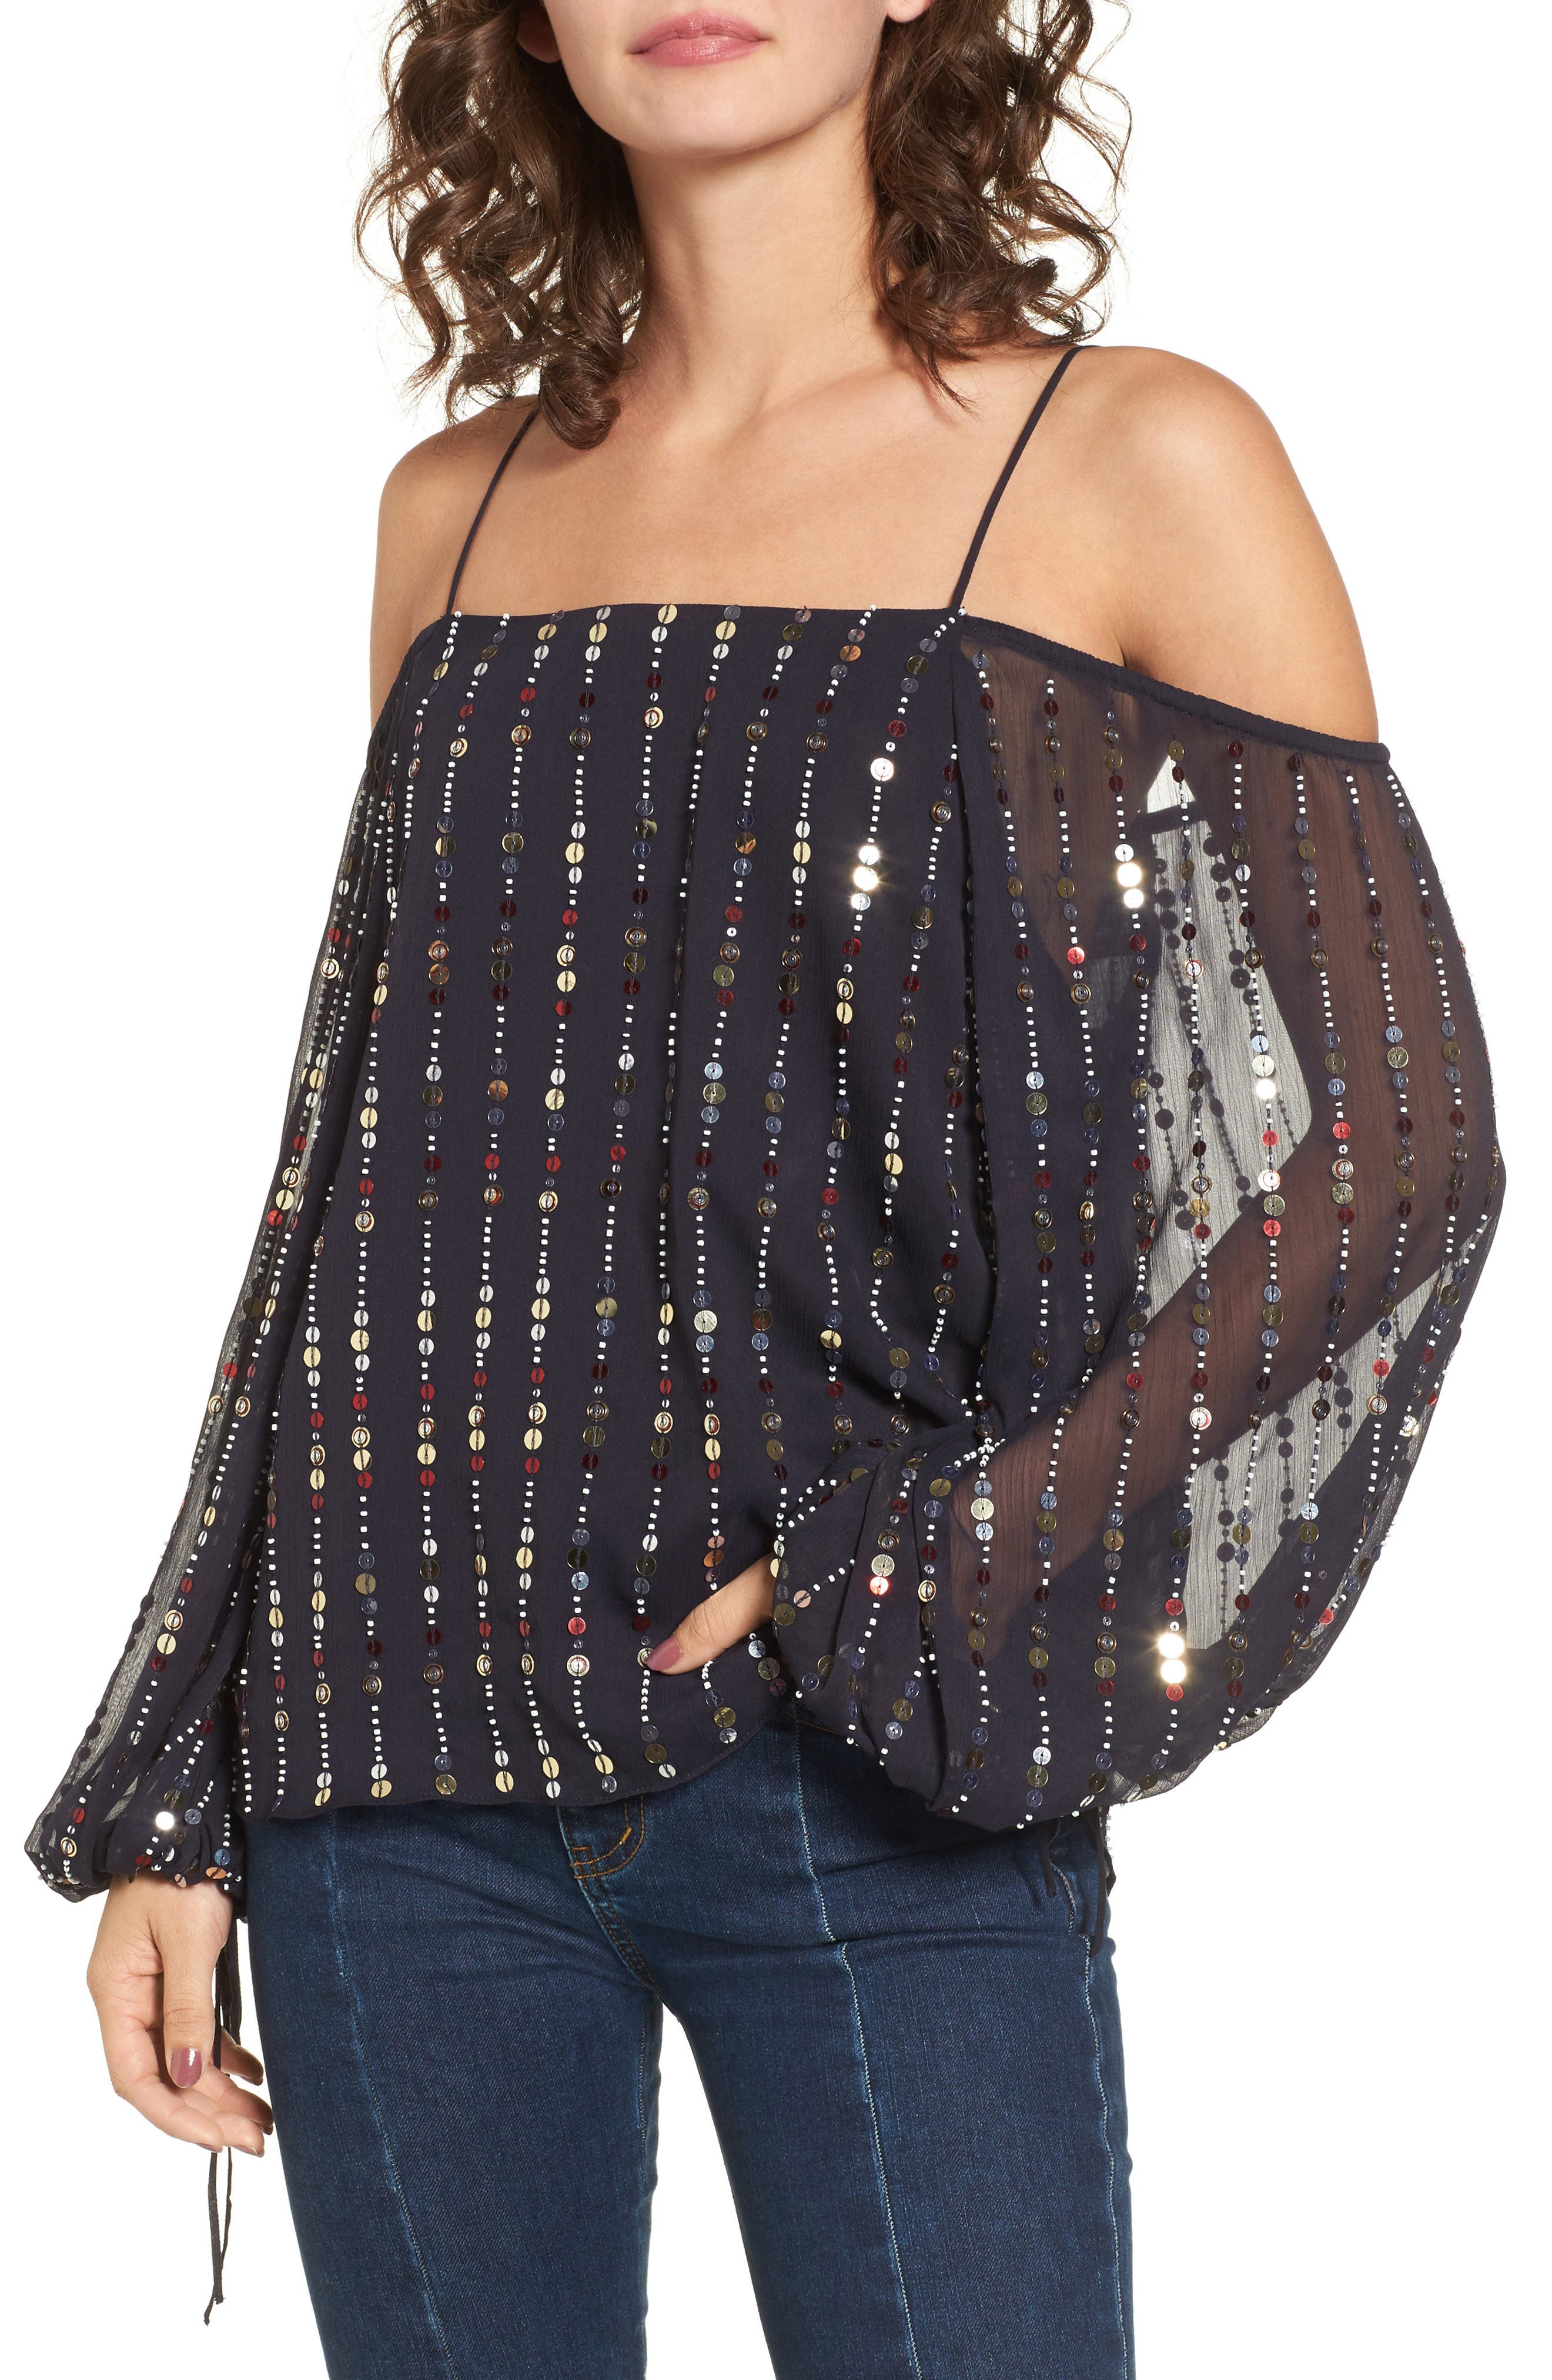 Main Image - Tularosa Cleo Sequin Date Night Blouse